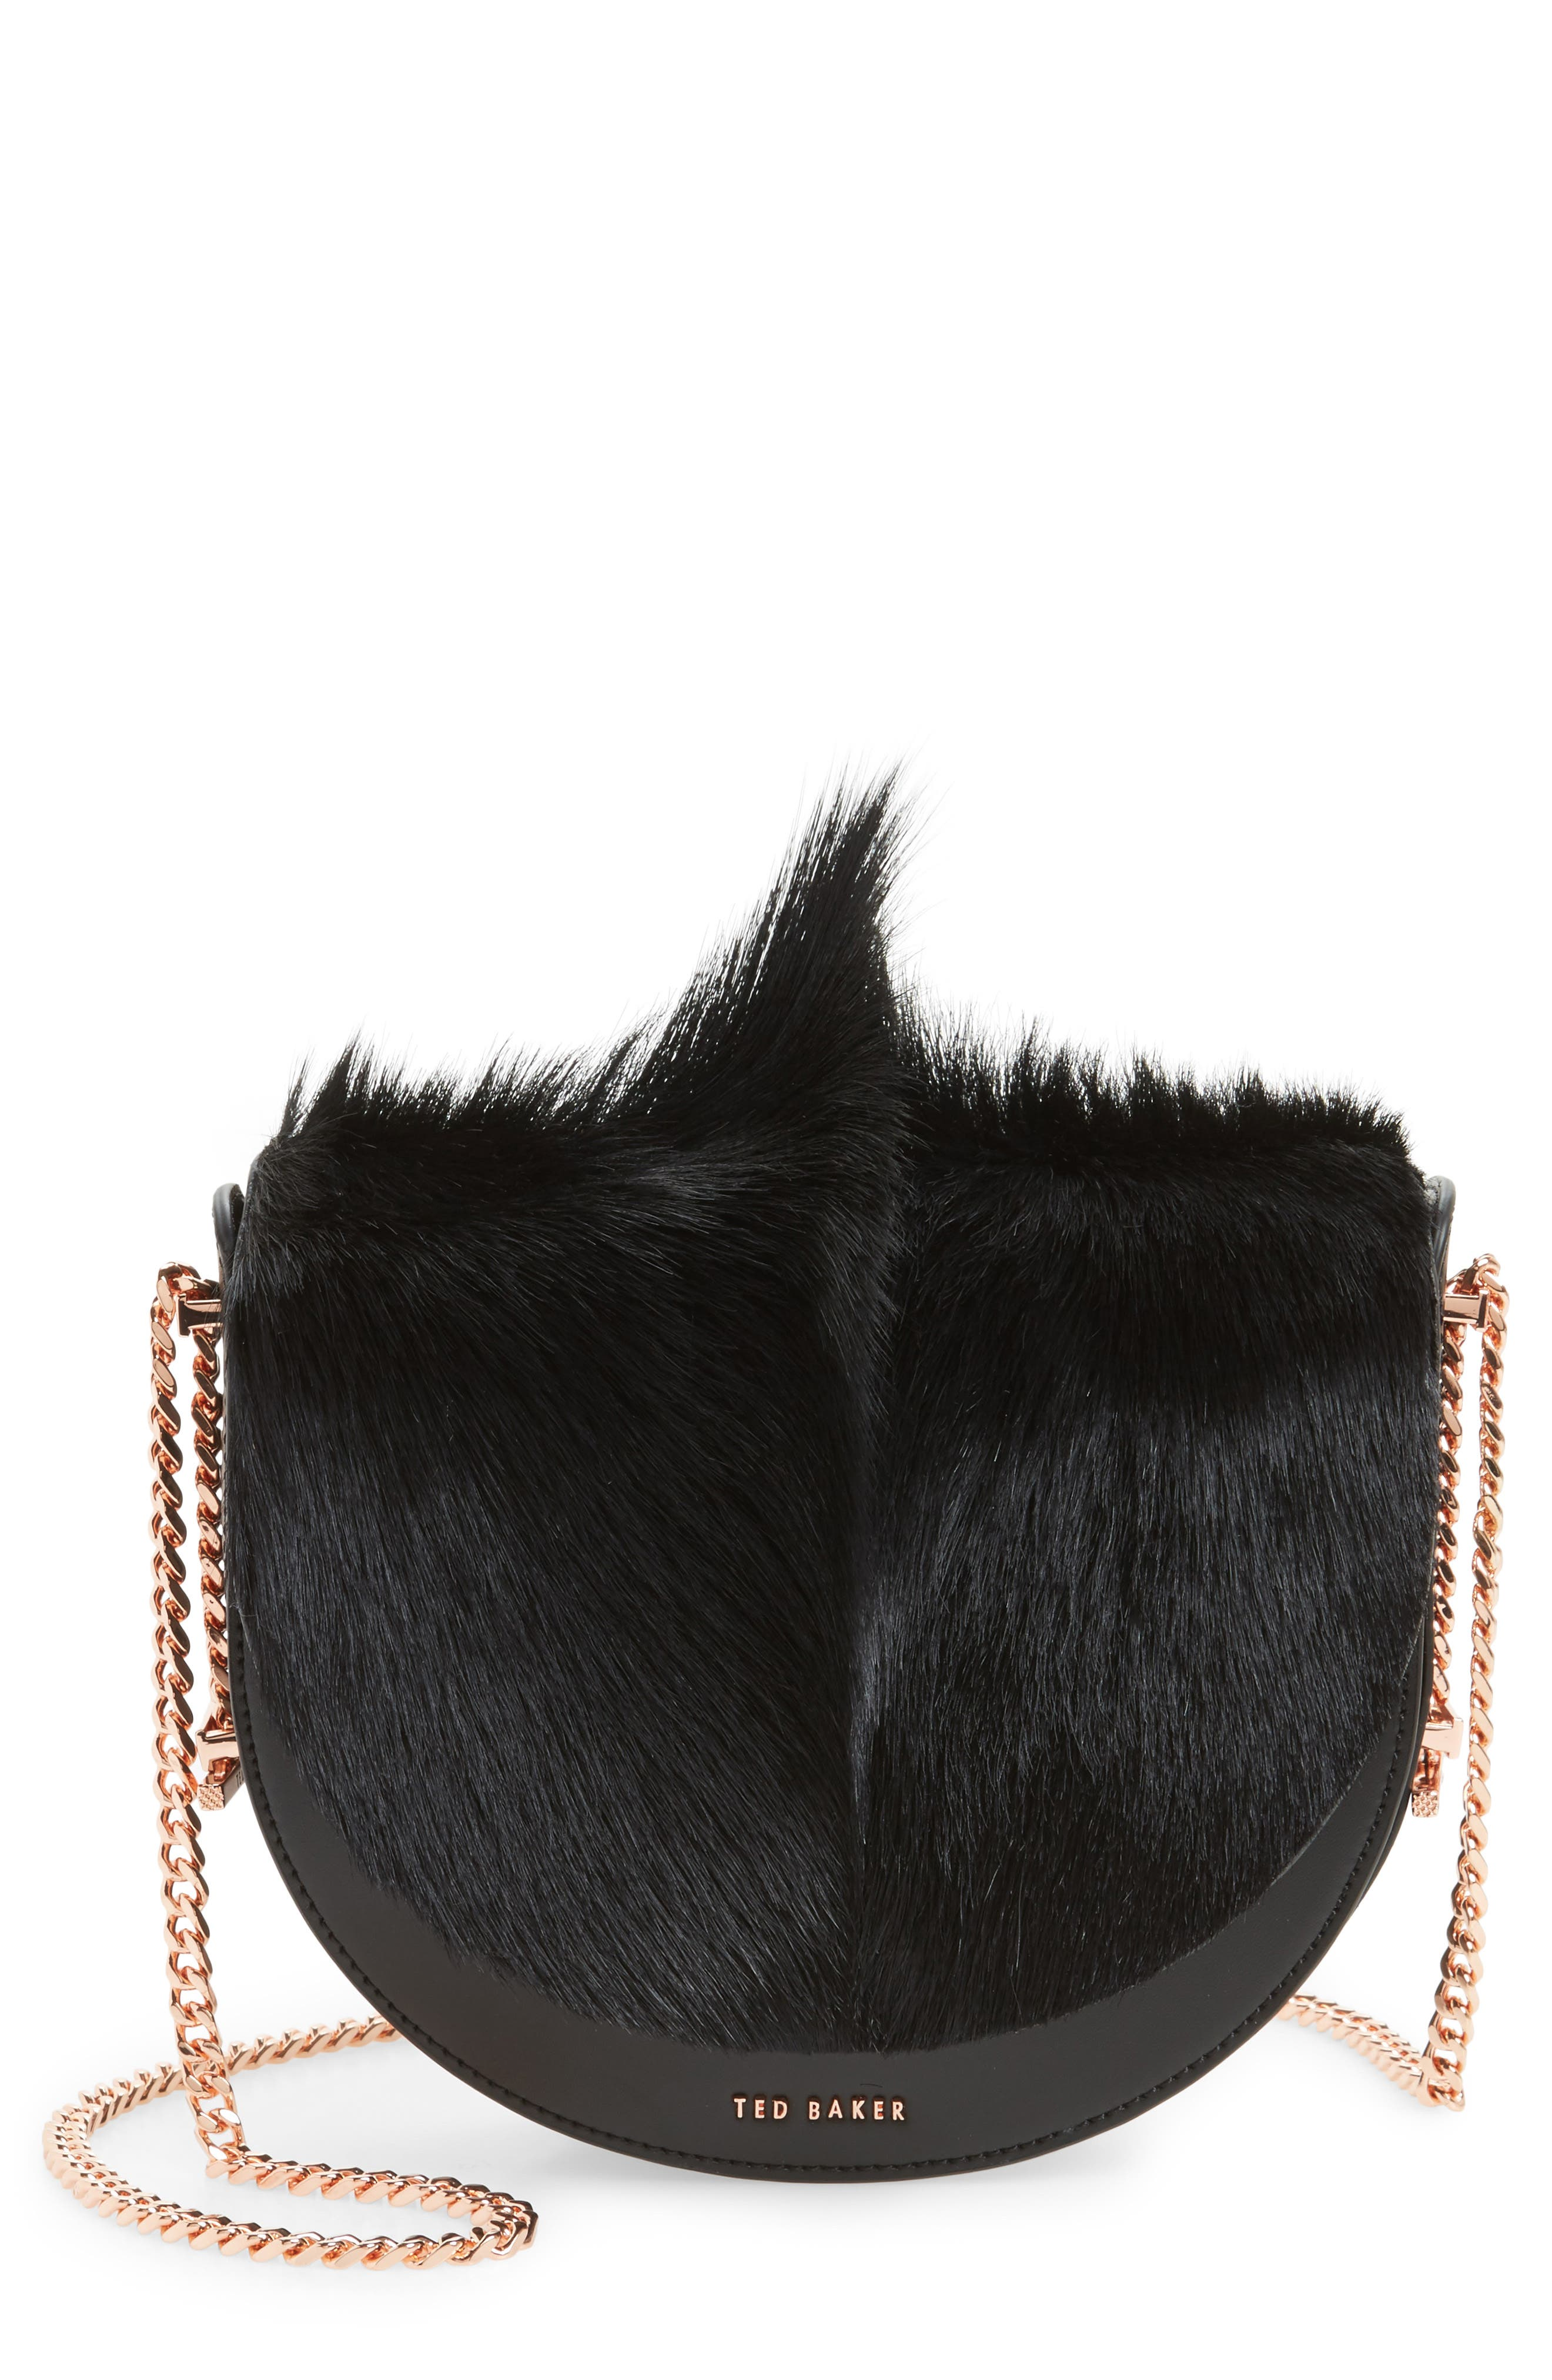 Alisonn Leather & Genuine Springbok Fur Saddle Bag,                             Main thumbnail 1, color,                             Black